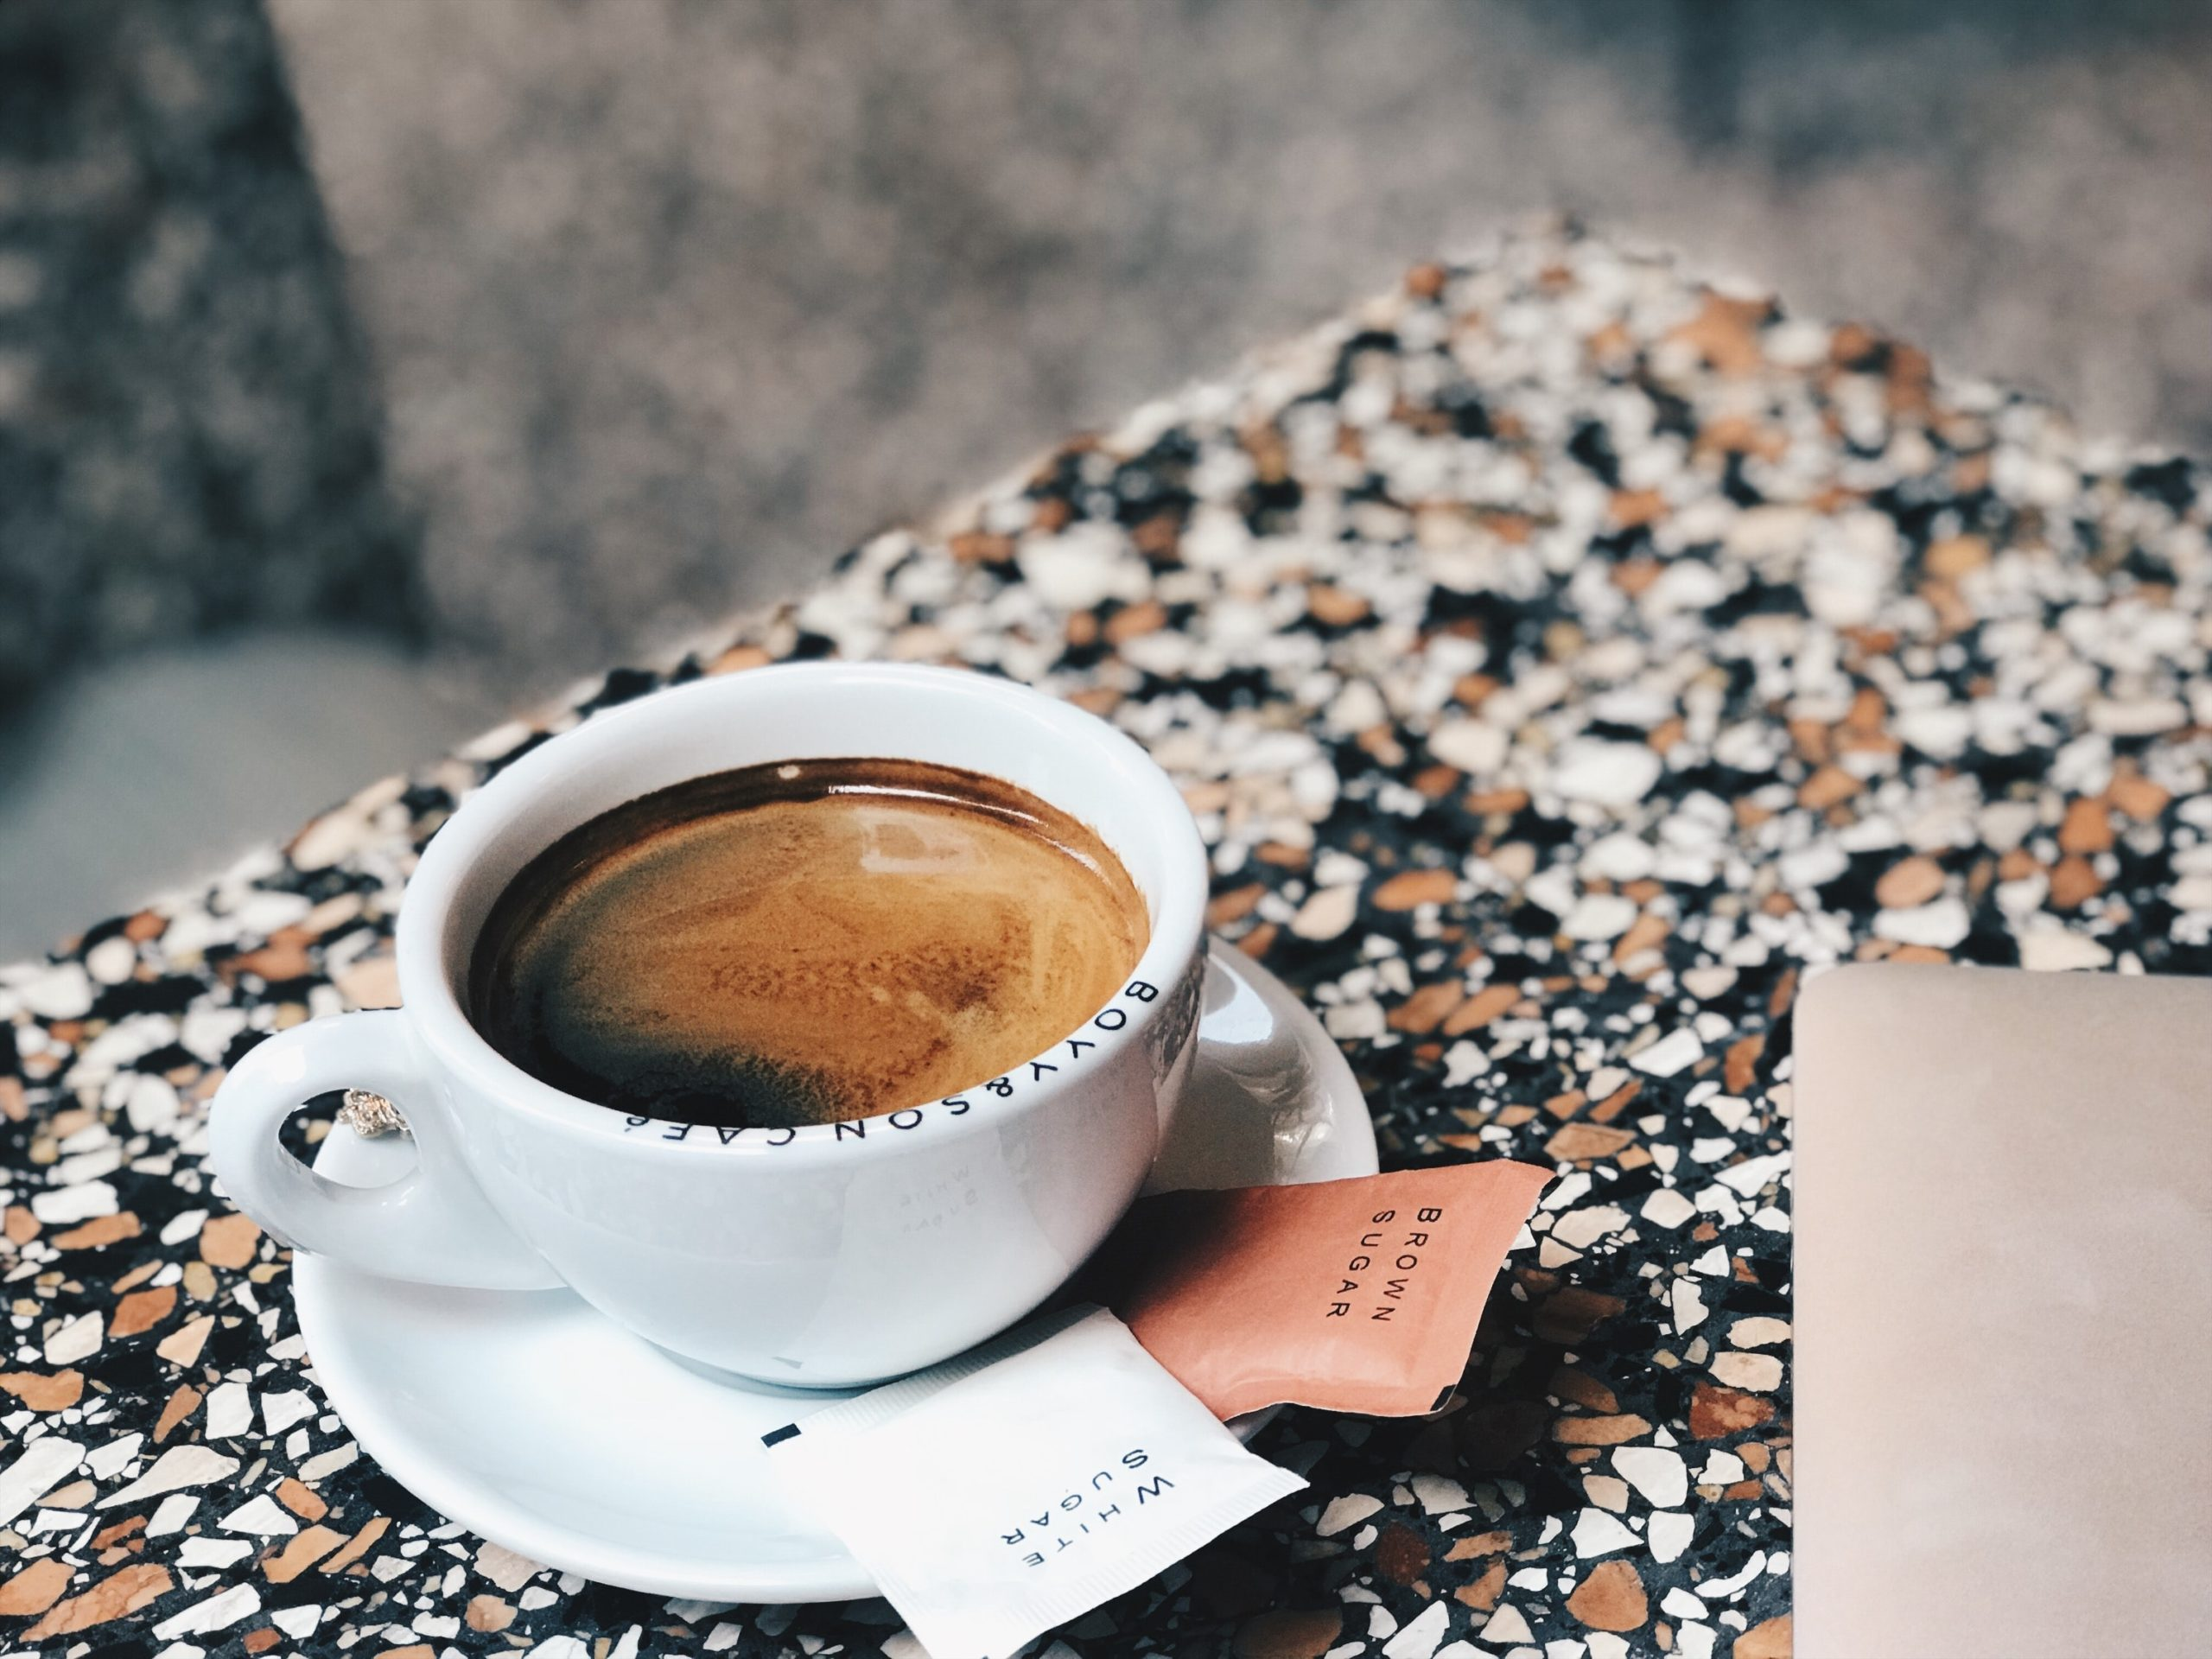 What Is an Americano? How Did It Come About?